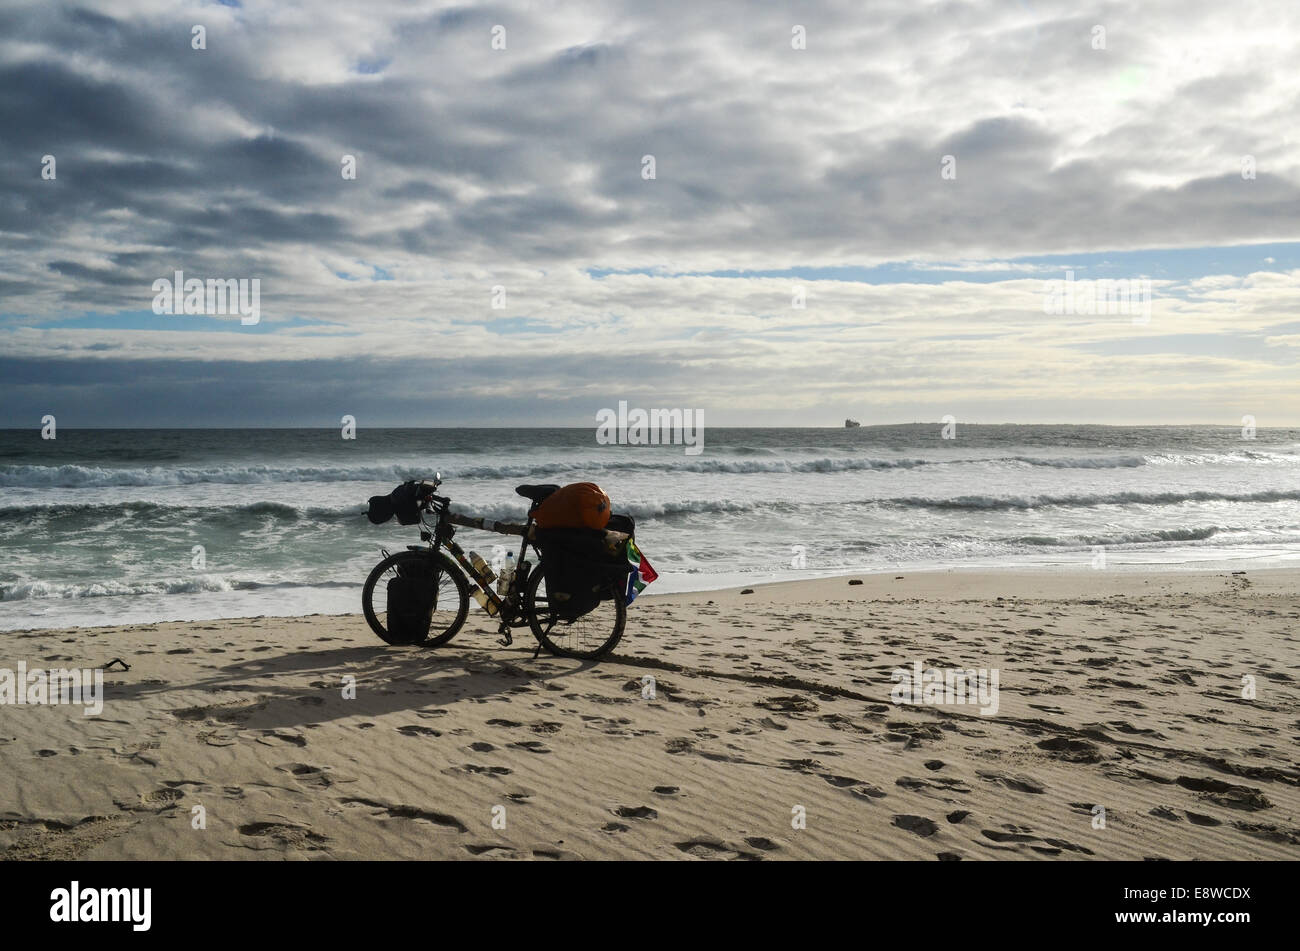 Cycle touring in Africa, a touring bicycle on the beach in Cape Town, South Africa, with cloudy skies, Robben Island - Stock Image